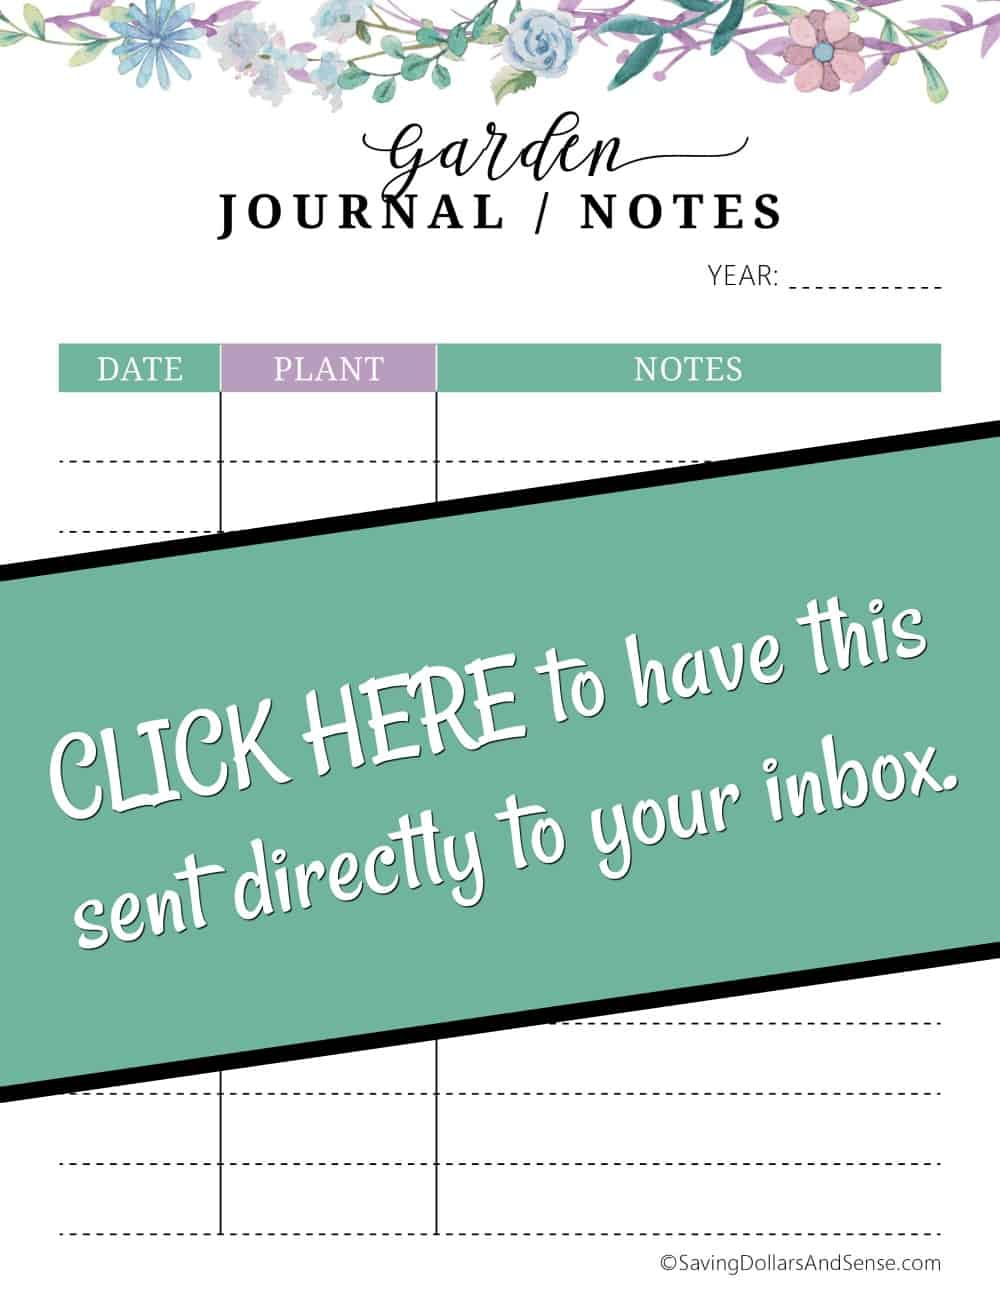 Garden journal notes PDF